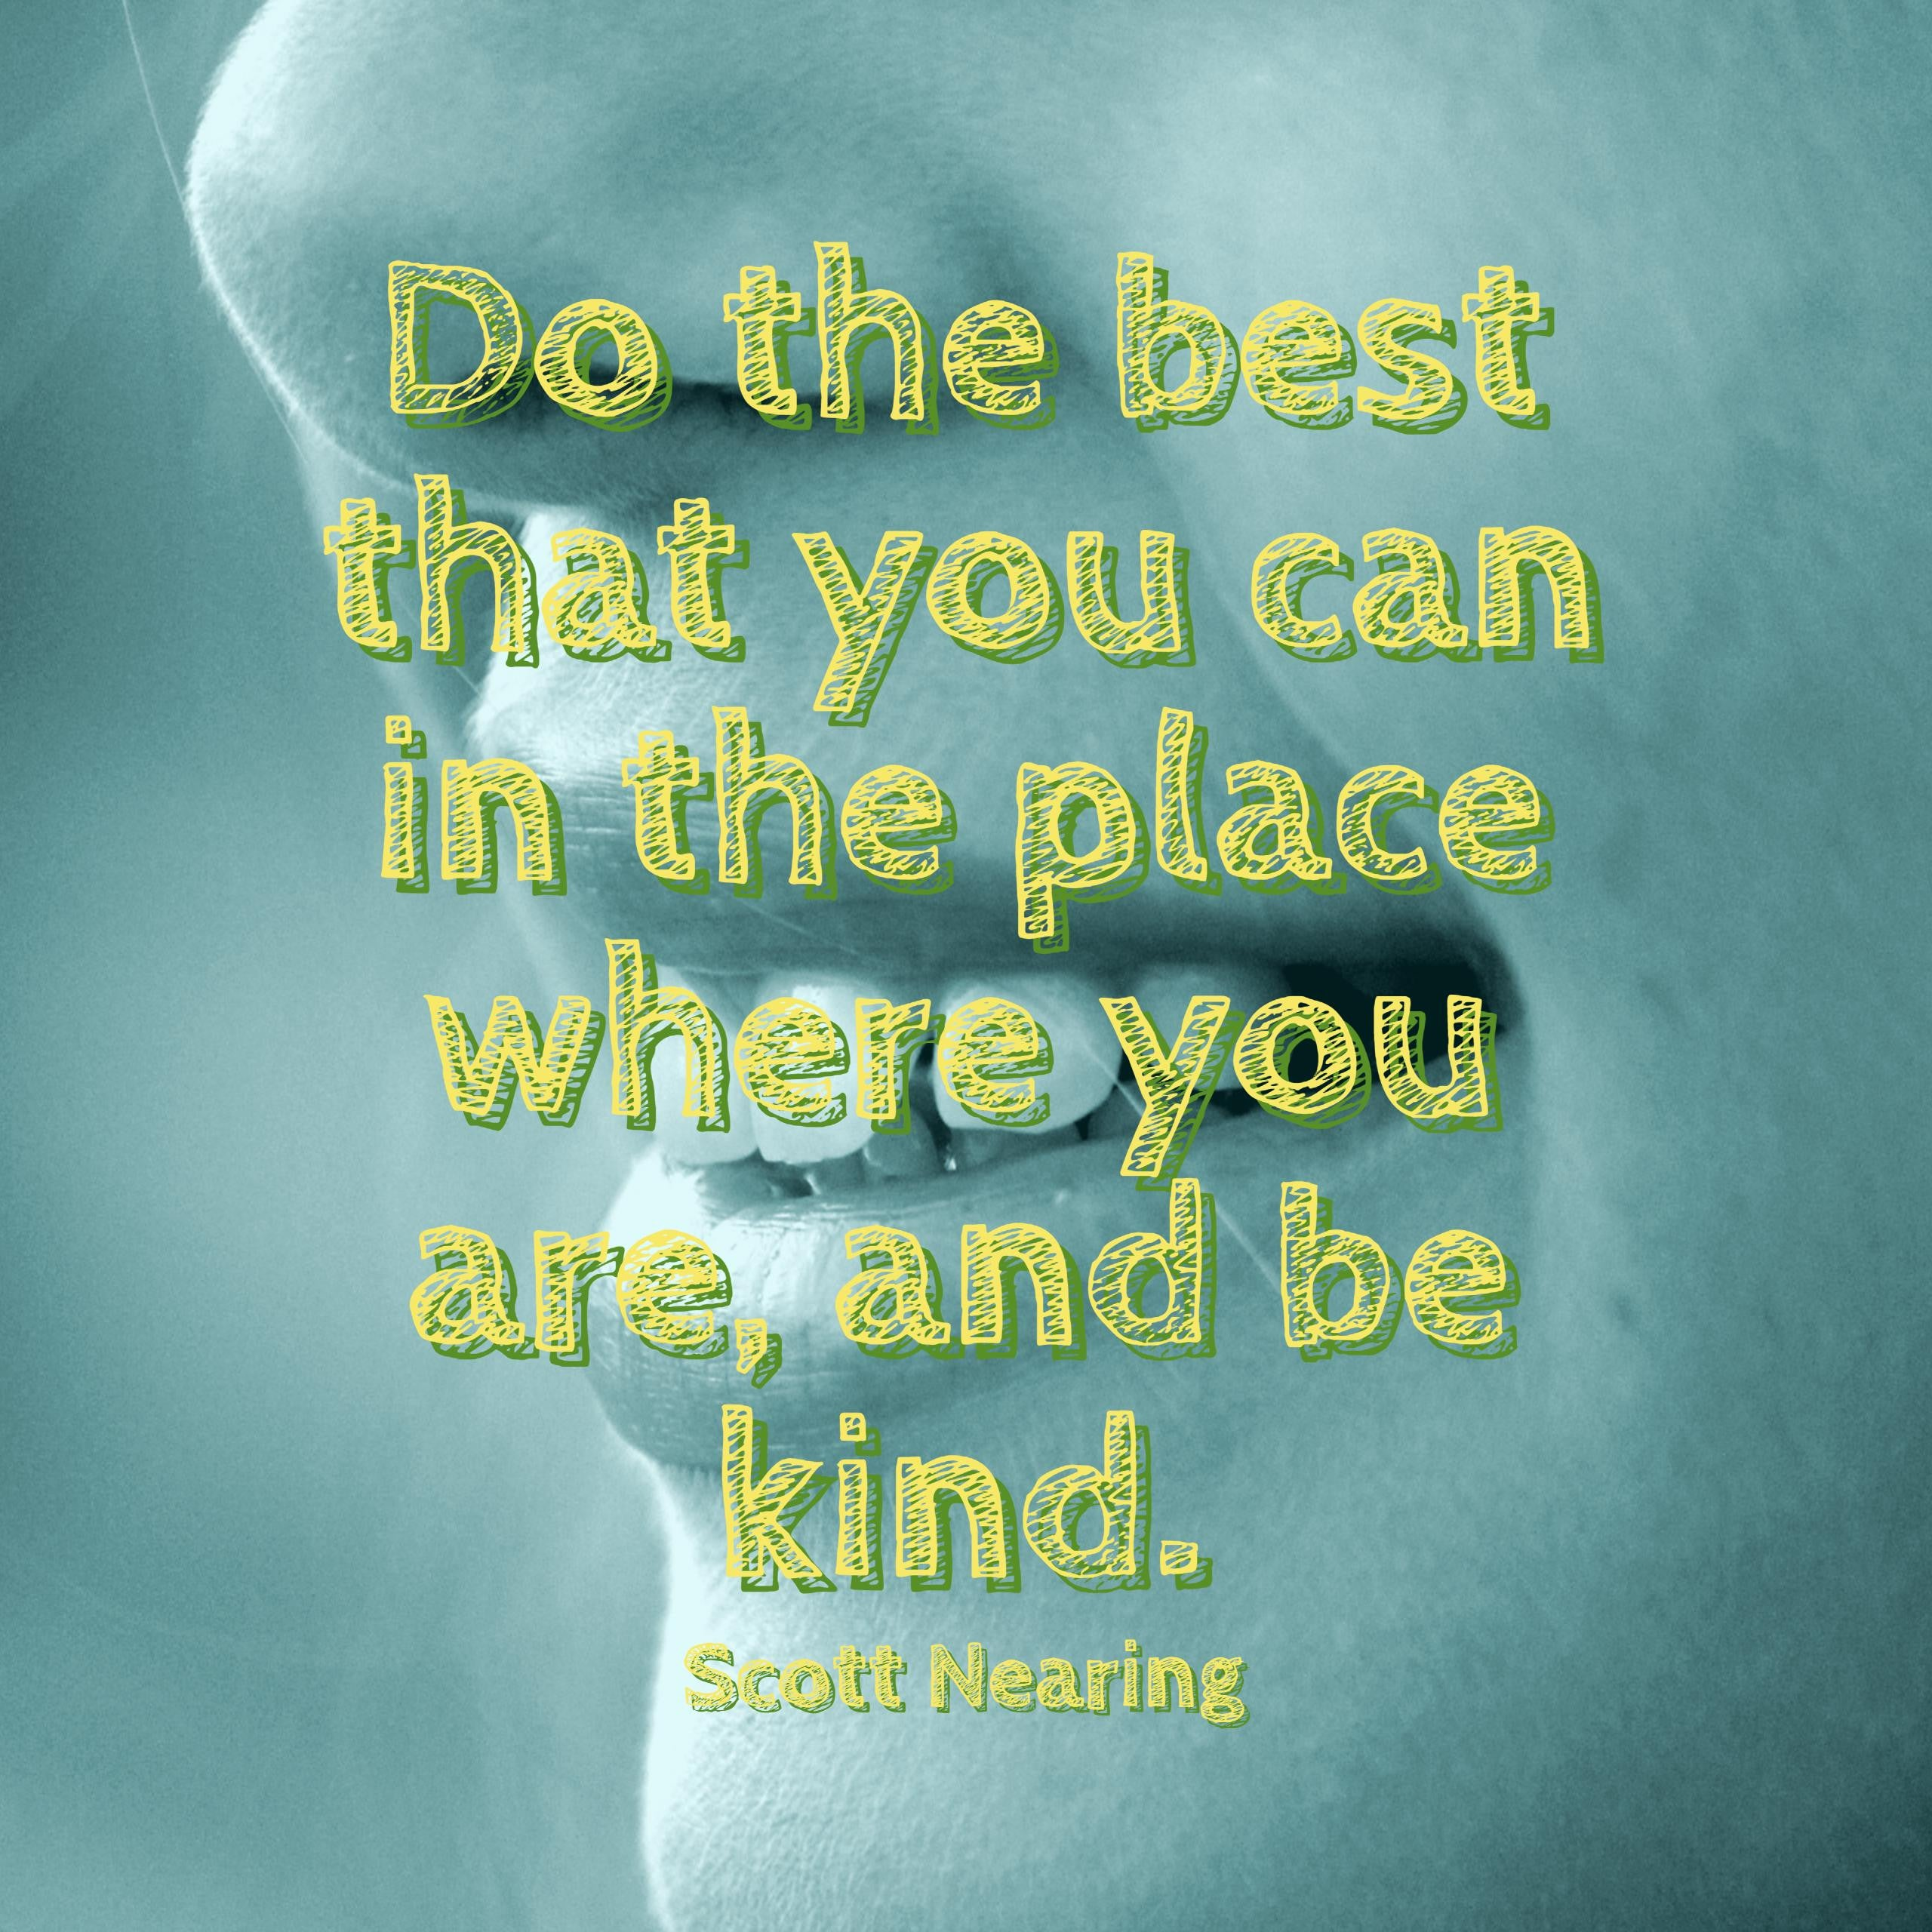 Do the best that you can in the place where you are, and be kind.